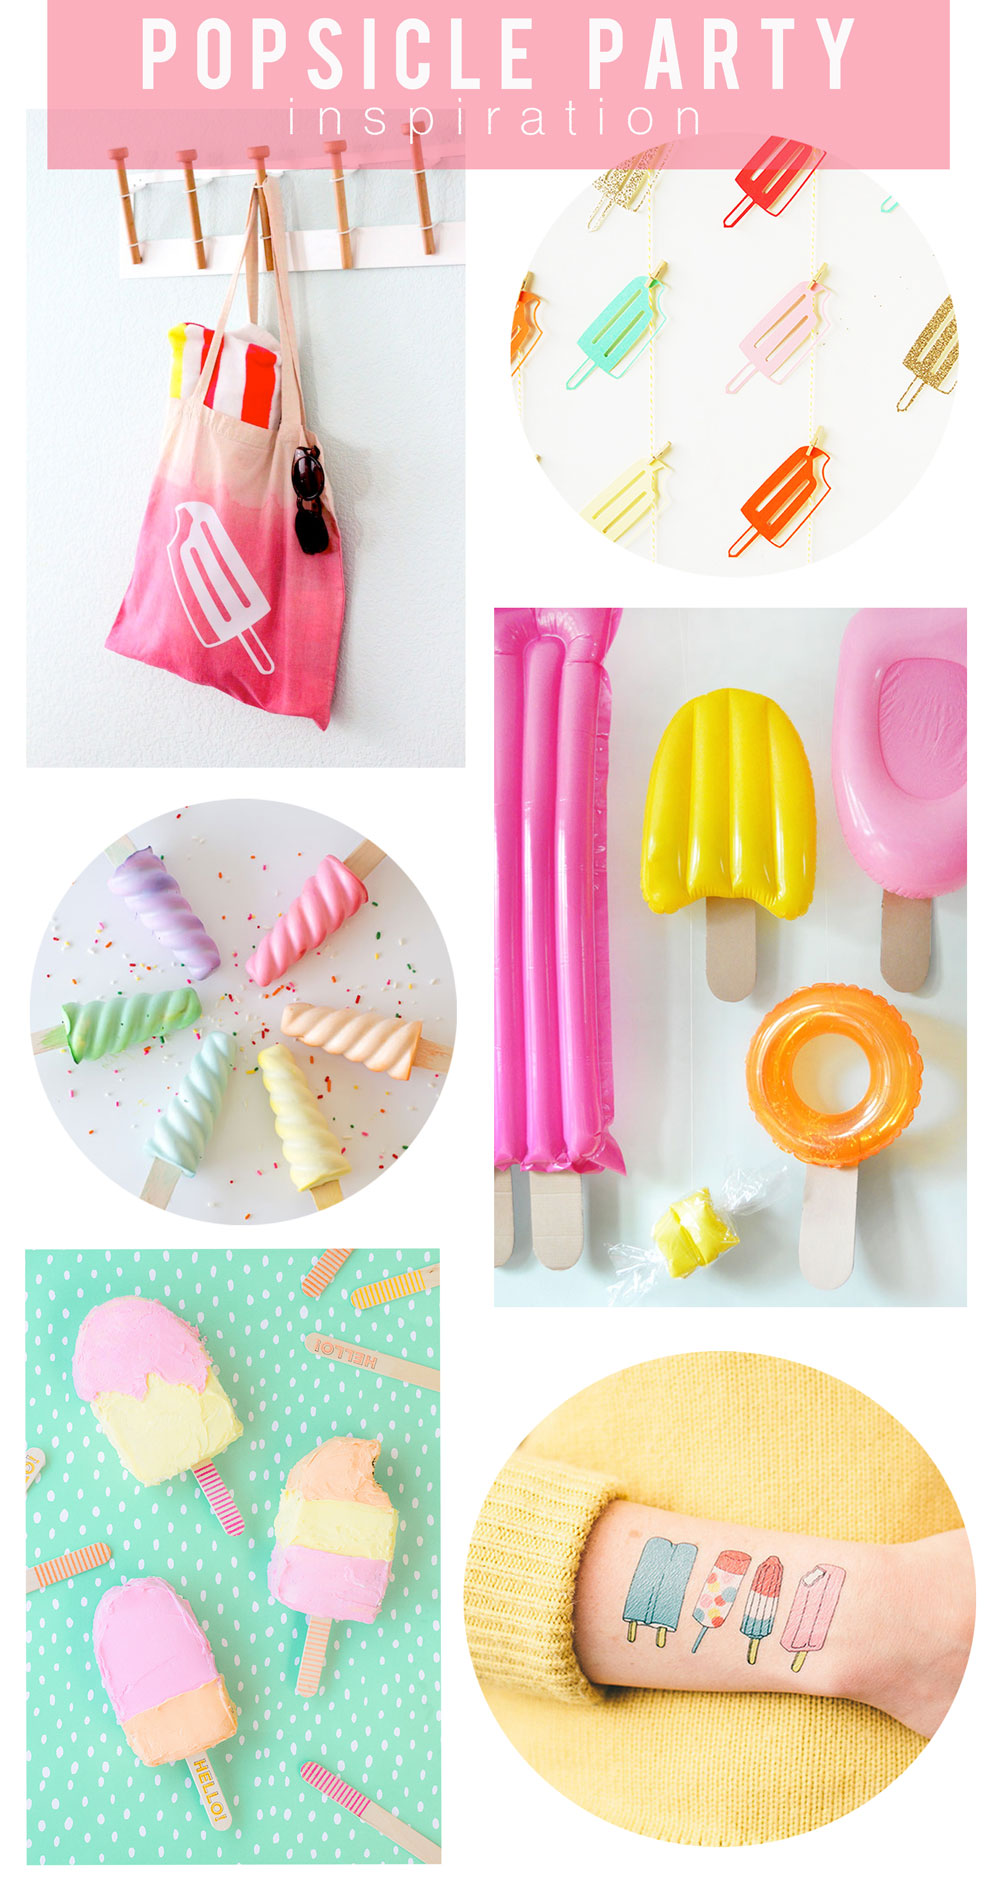 popsicle-party inspiration